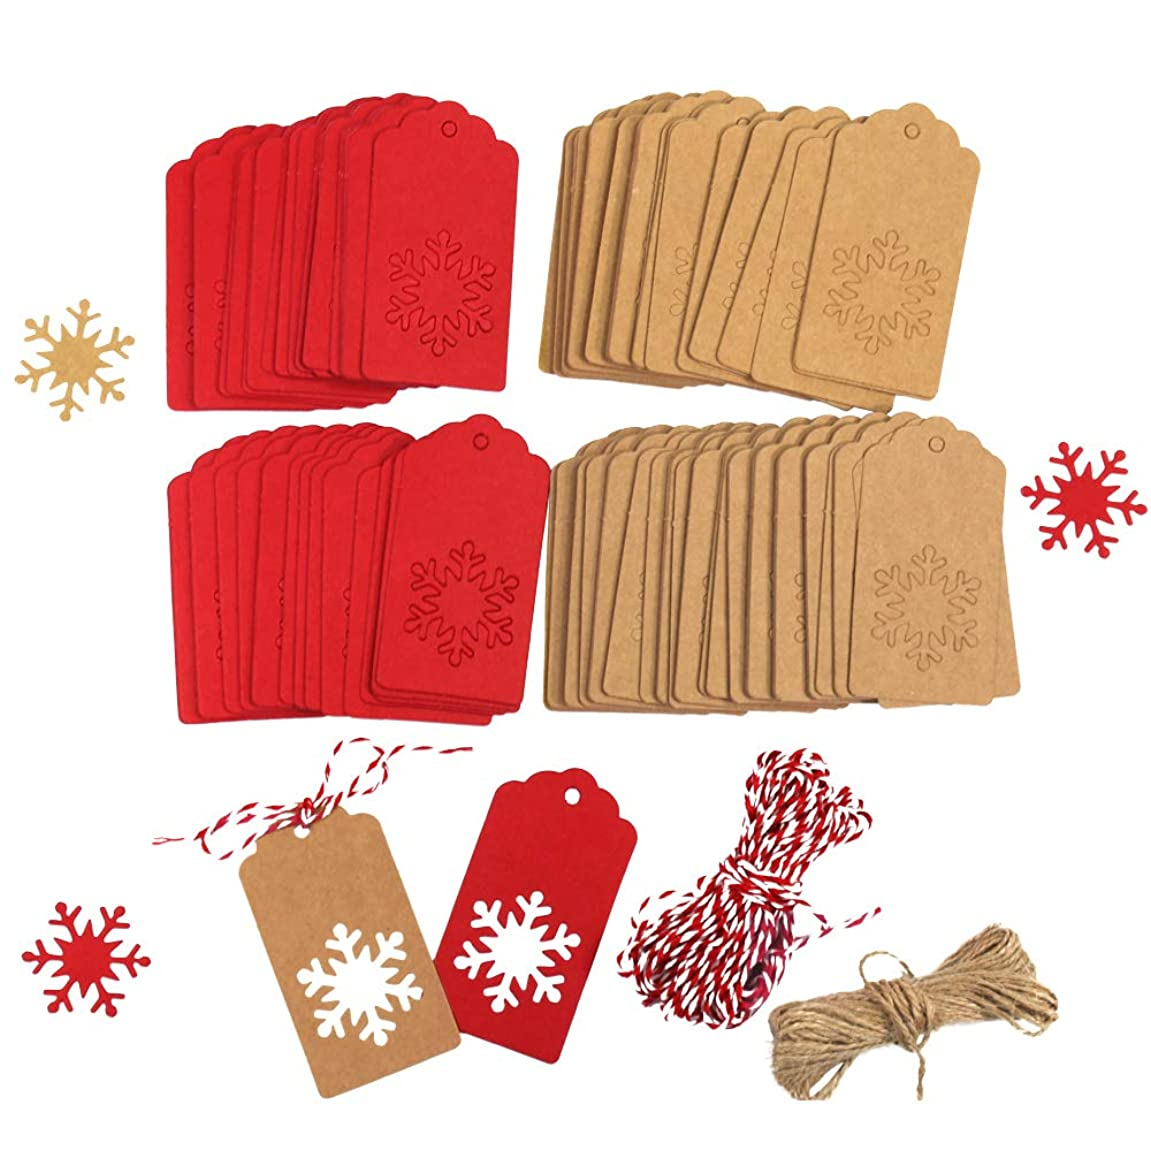 Tuzico 200Pcs Paper Tags Kraft Christmas Gift Tags Christmas Snowflake Shape Hang Labels with Natural Jute Twine Brown and Red Twine Total 65.6 Feet for Gift Tag Decorations ewyxdh731